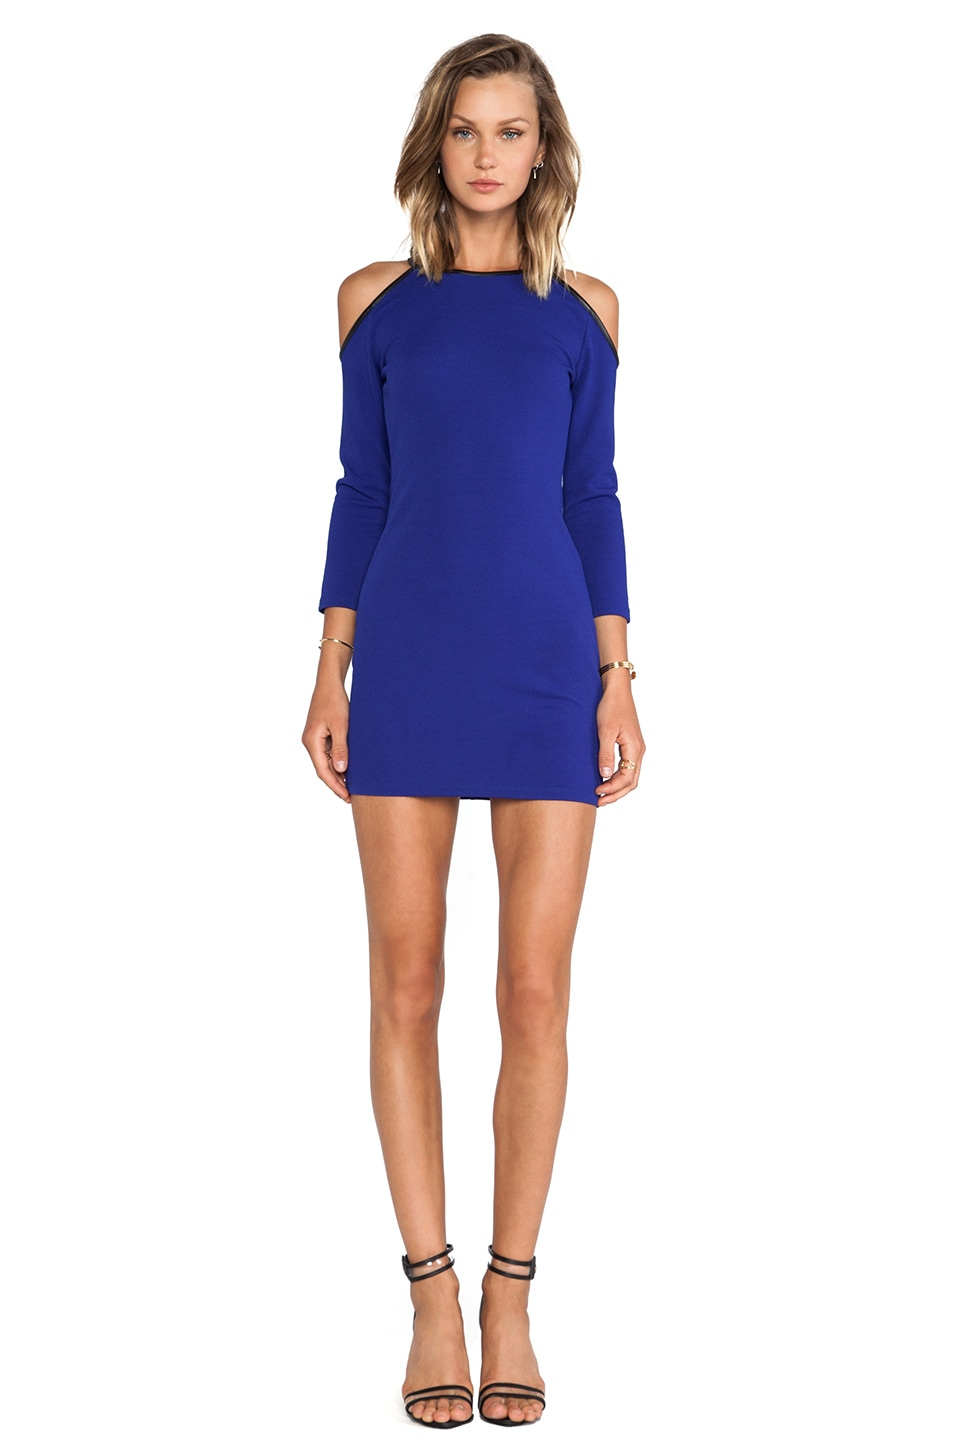 Lovers + Friends Yours Mini Dress in Blue